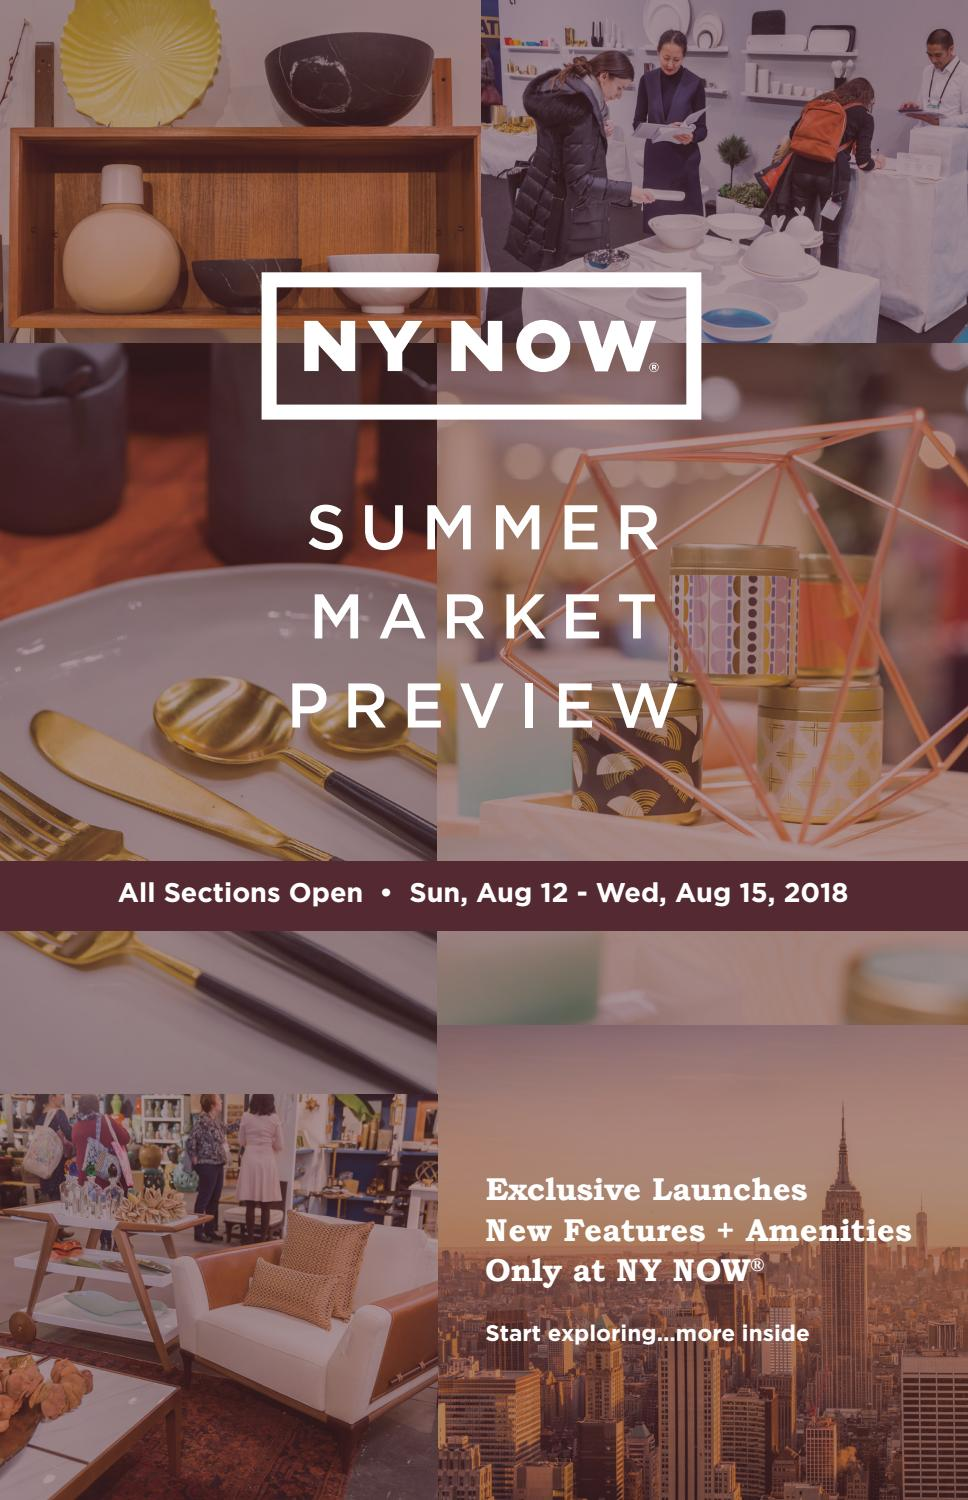 65d9d34a1b0 NY NOW Summer 2018 Preshow Planner by PubMan, Inc. - issuu